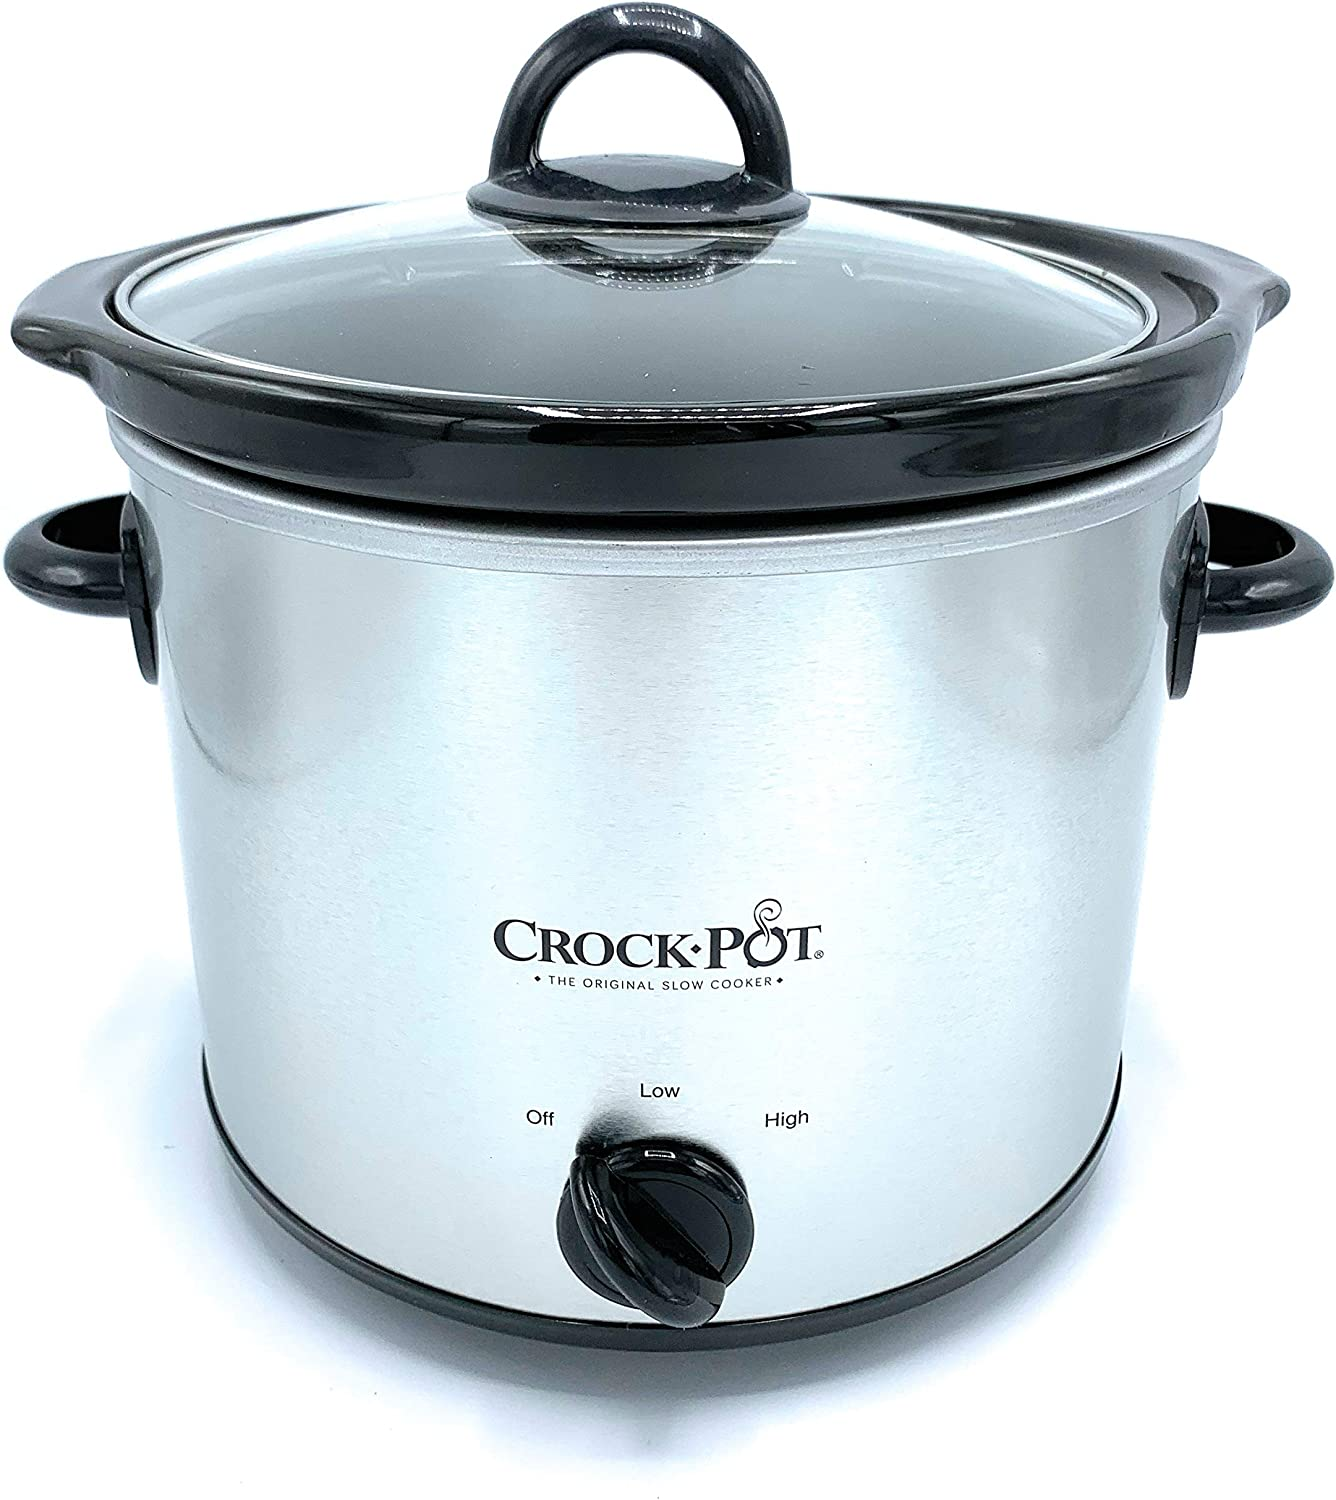 Crock Pot 4-Quart Round Slow Cooker-Silver. Crockpot Has Manual Control 2 Heat Settings- Recipes Included. Small Slowcooker With Glass Lid is Dishwasher Safe. Home Cooked Meals With One Pot Cooker.